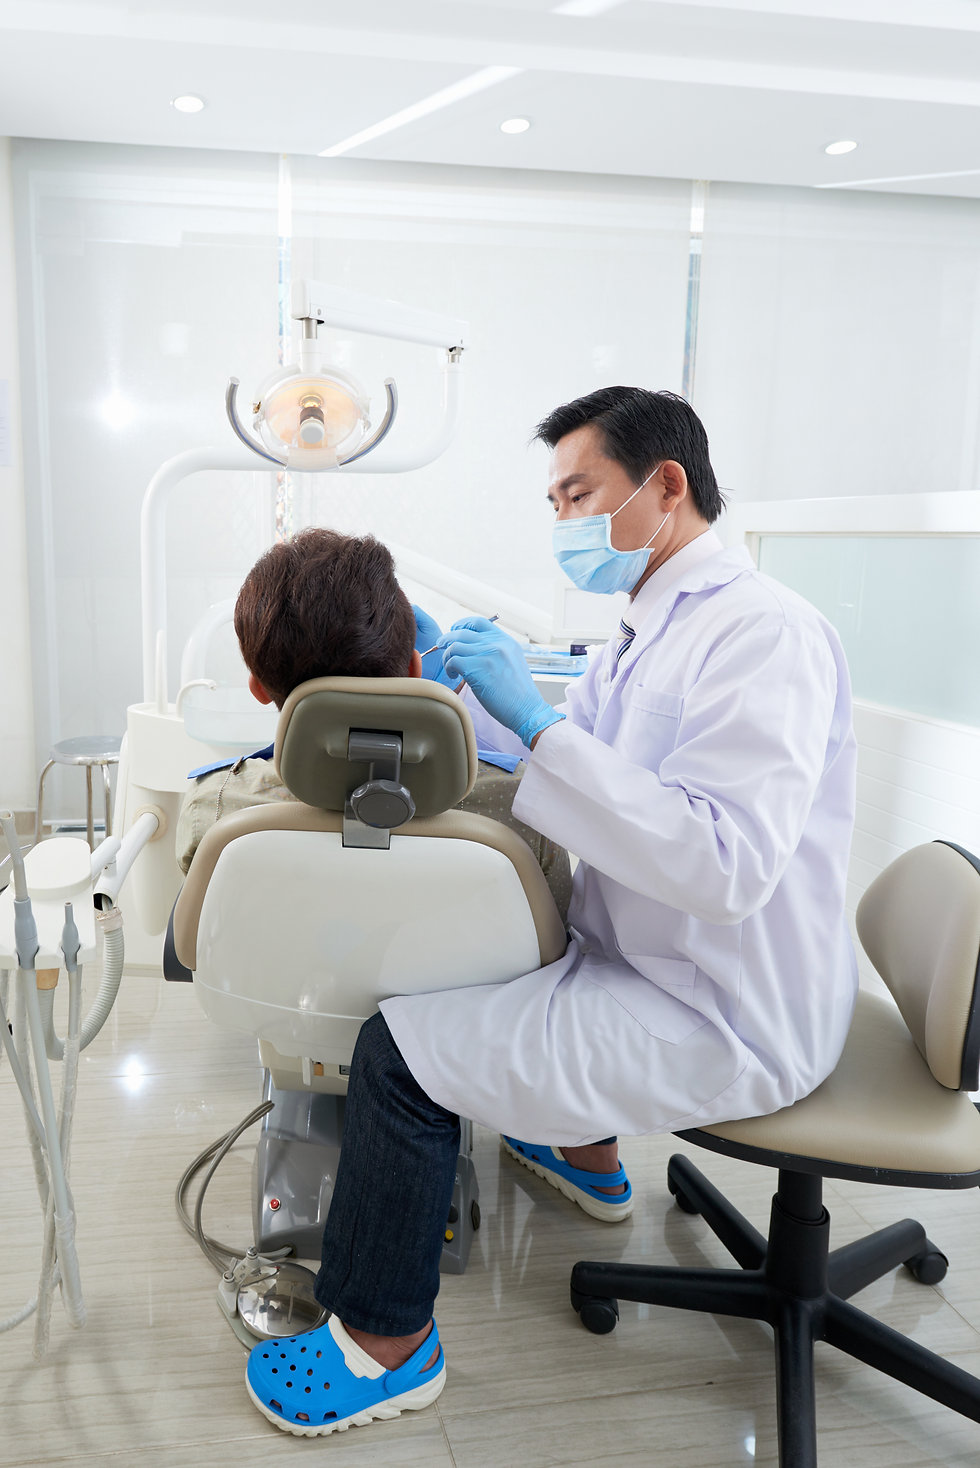 Dentist082 Alero_Licensed